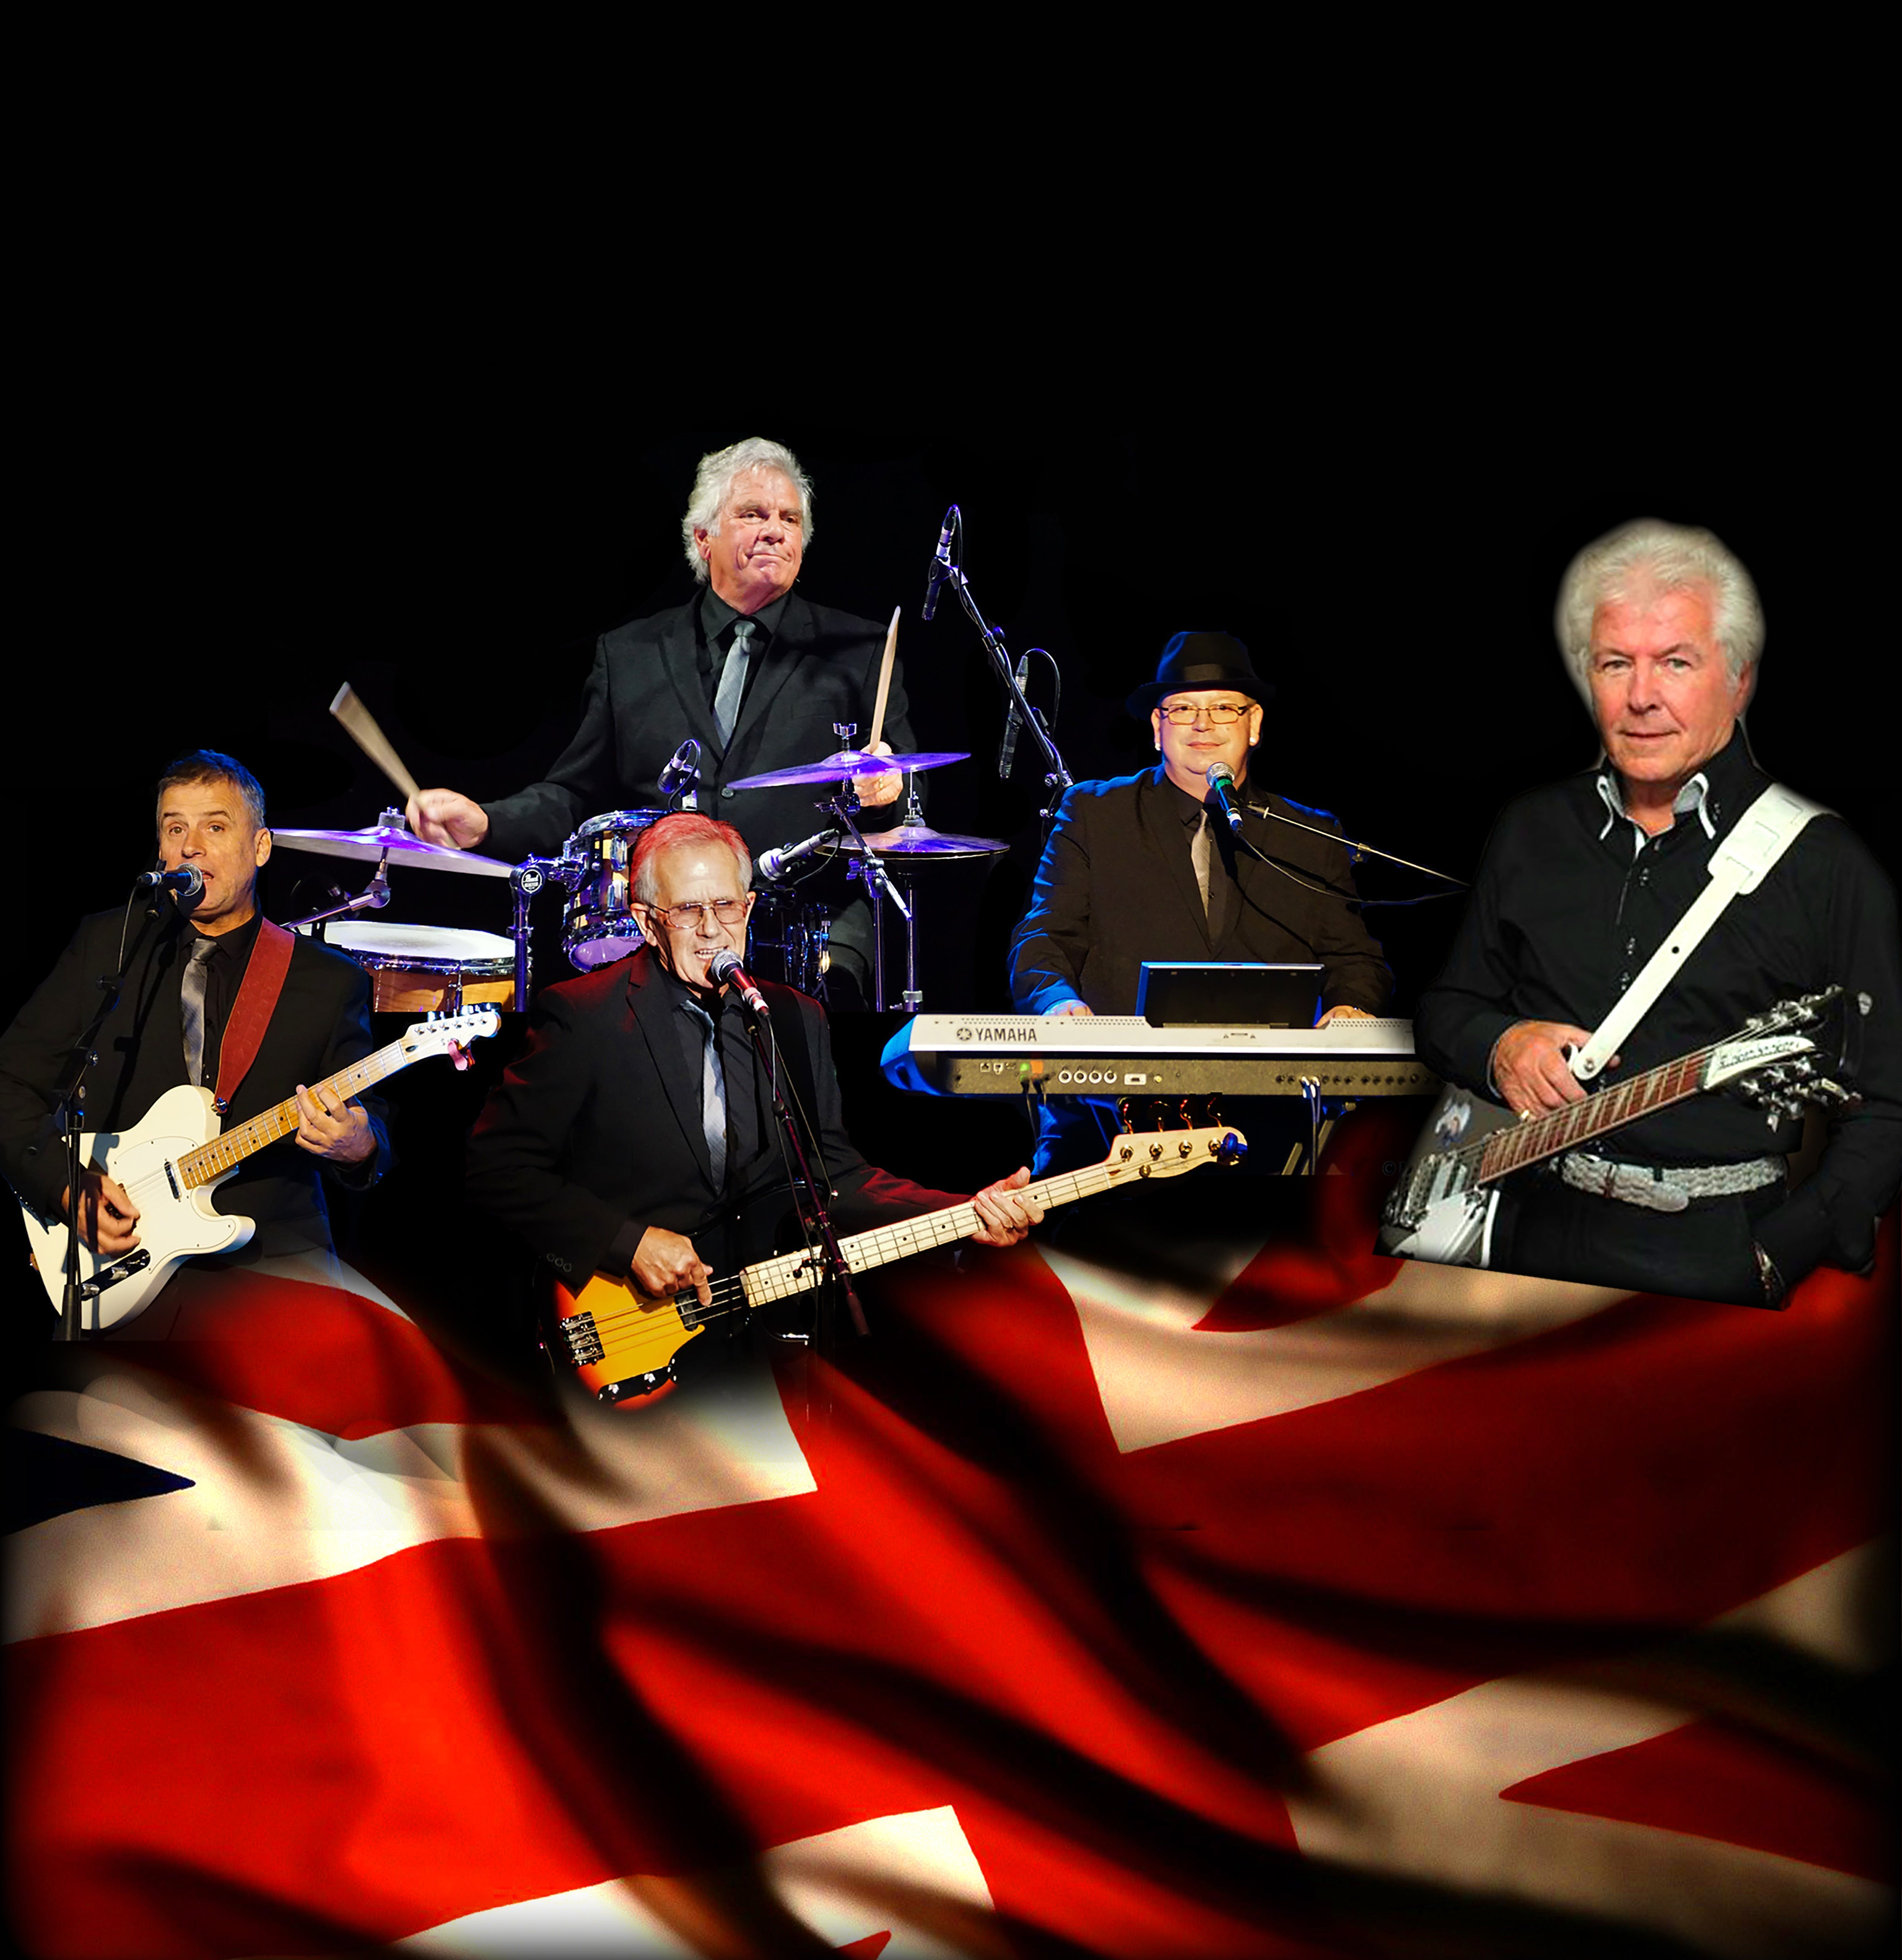 Herman's Hermits with Special Guest Mike Pender - The Six O'Clock Hop - Accommodation Perth